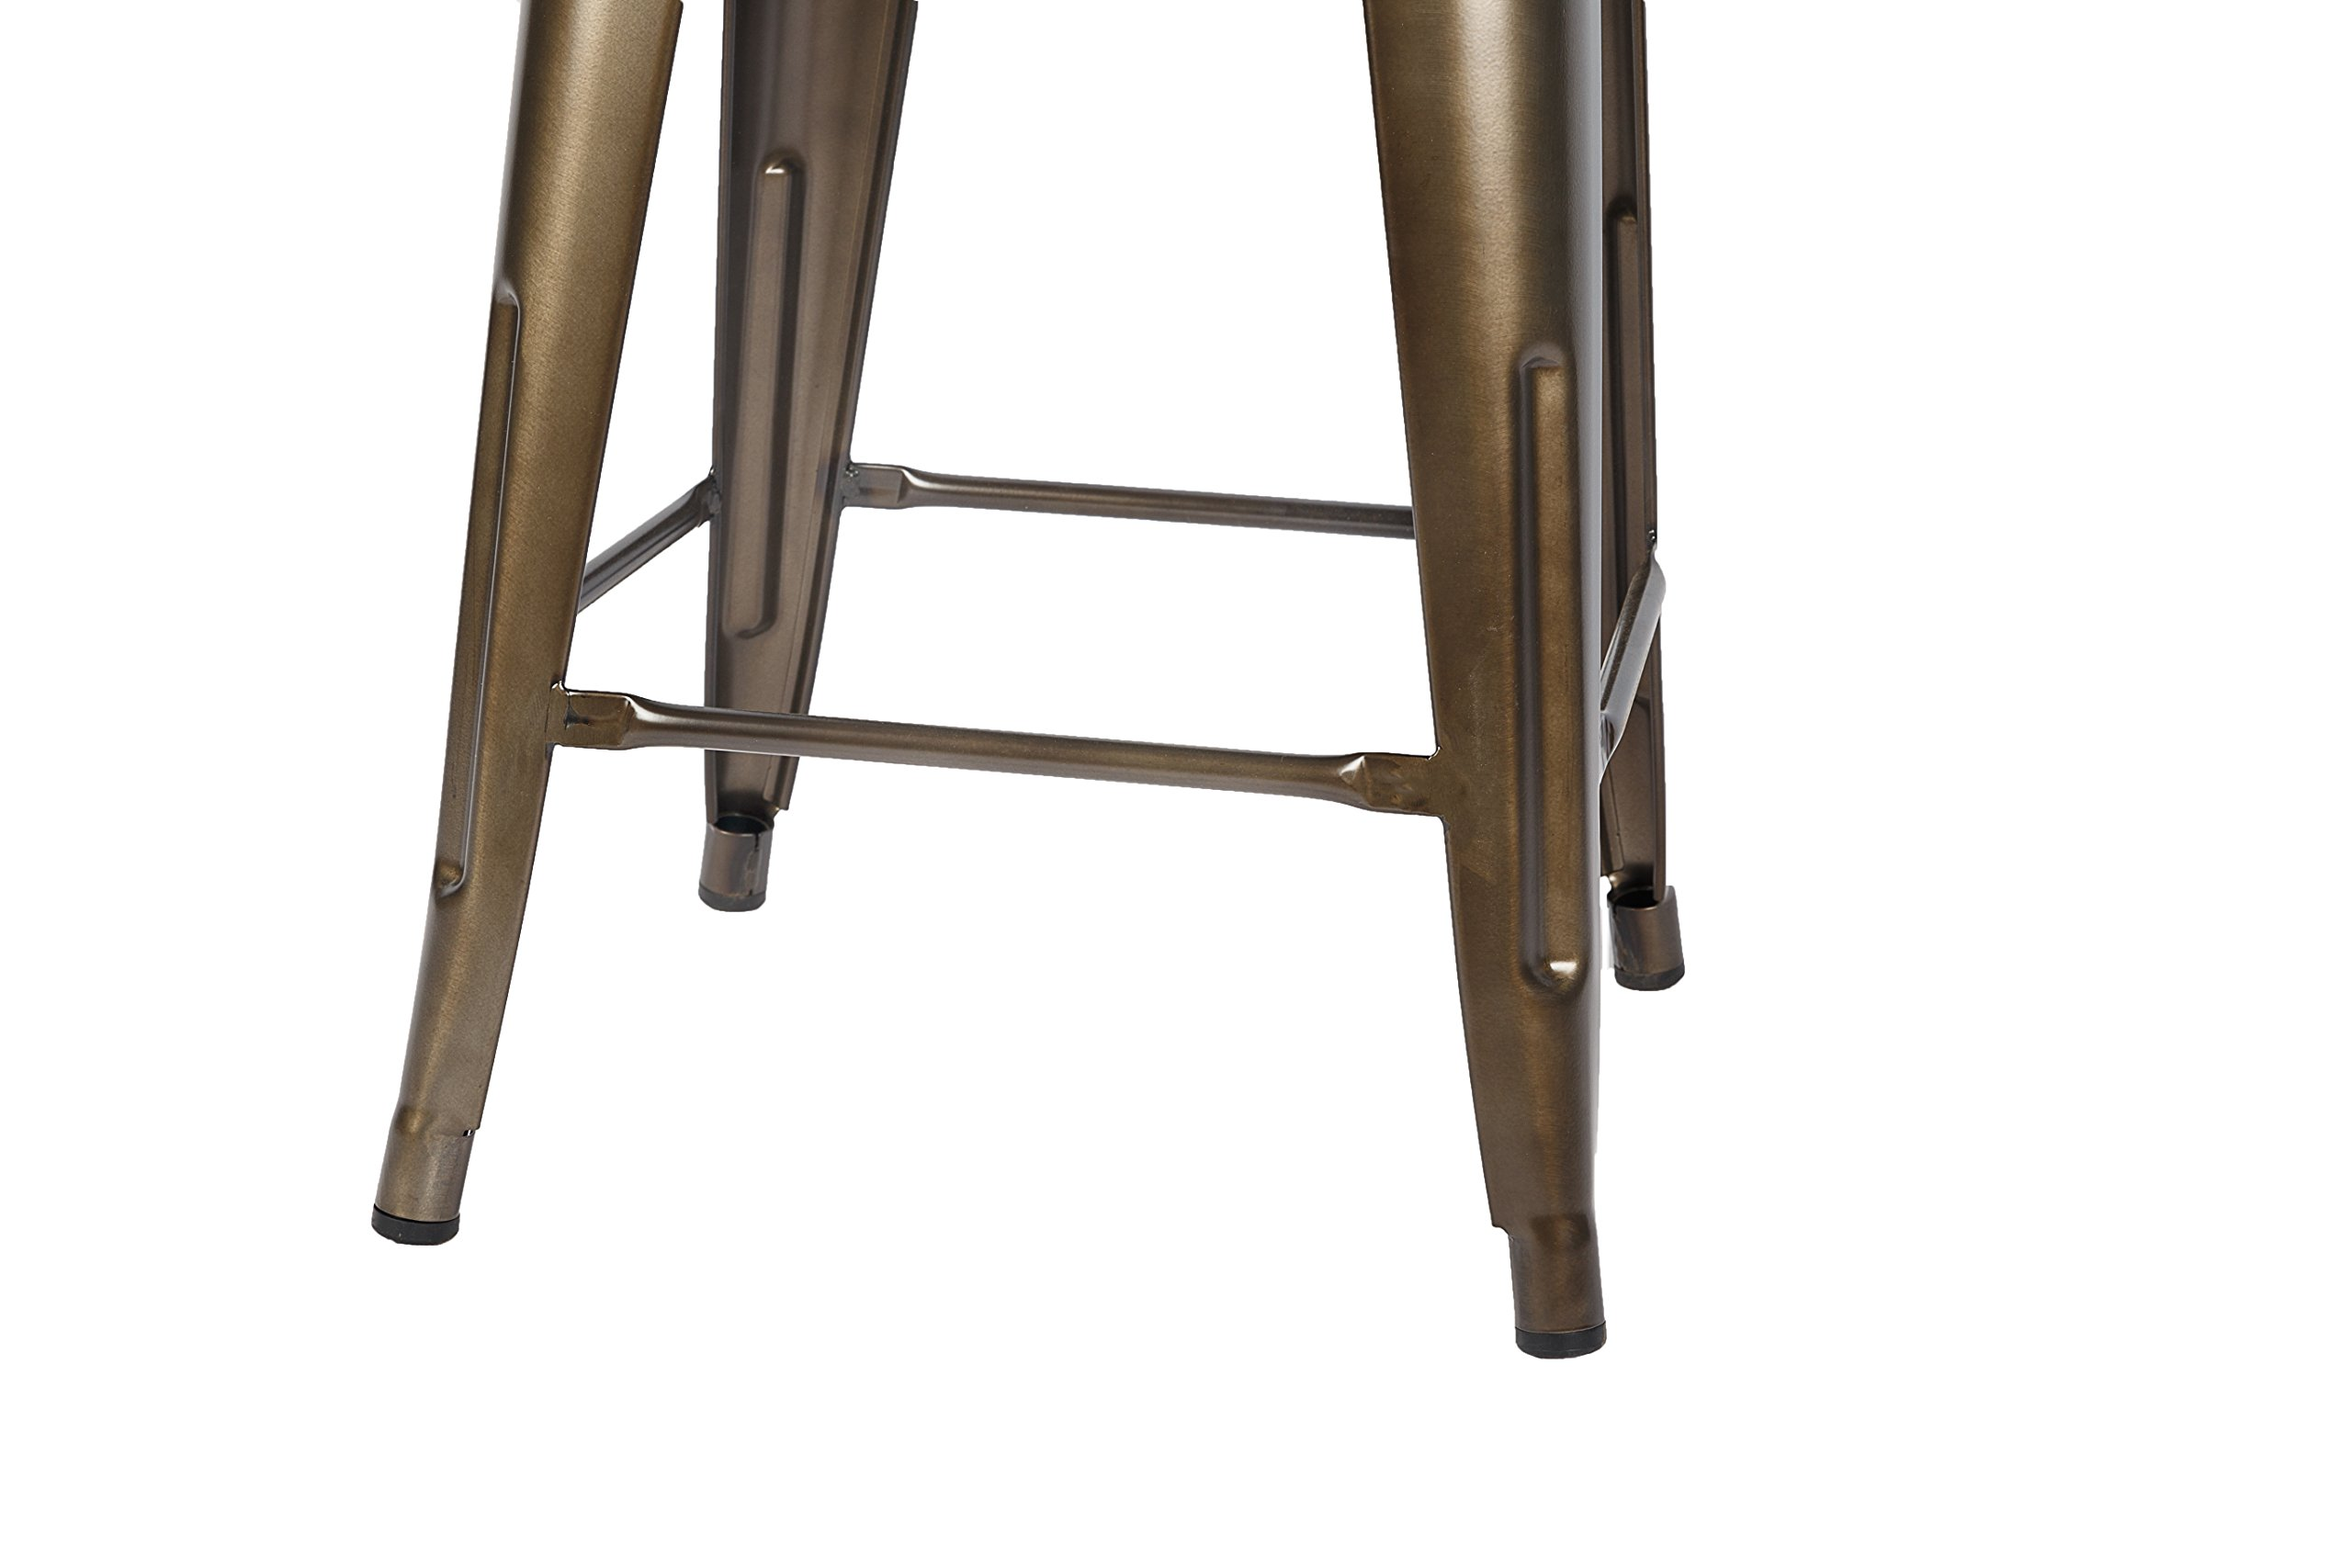 LCH 24 Inch Patio Metal Industrial Bar Stools, Set of 4 Indoor/Outdoor Counter Stackable Barstool with Wood Seat, 500 LB Limit, Antique Copper by LCH (Image #8)